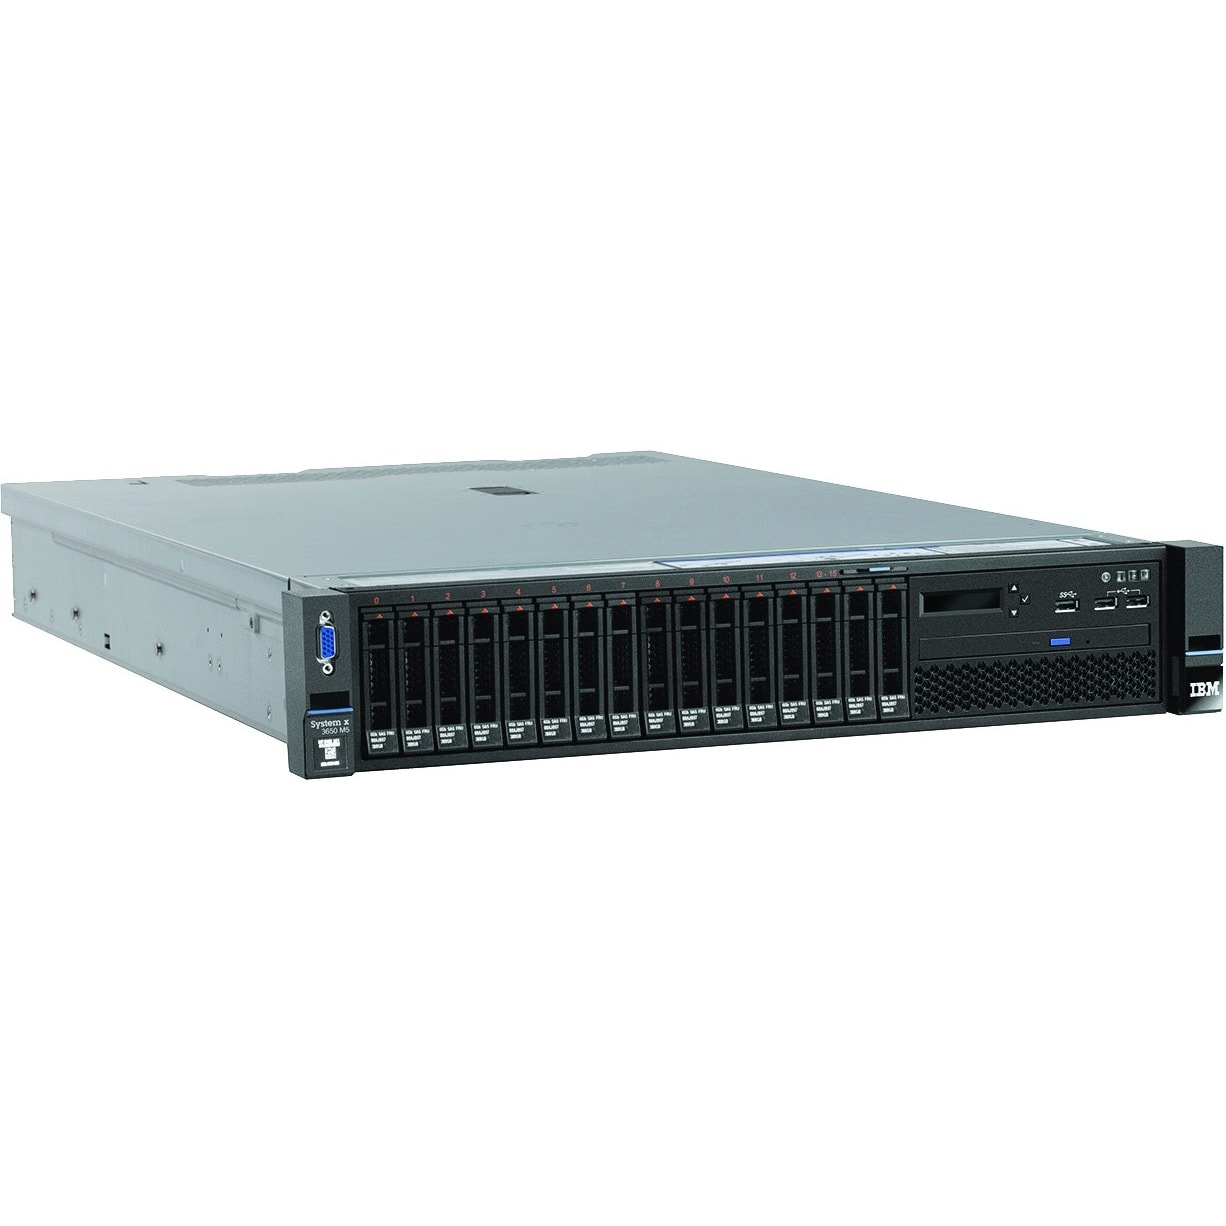 Buy Lenovo System x x3650 M5 887110X 2U Rack-mountable ...